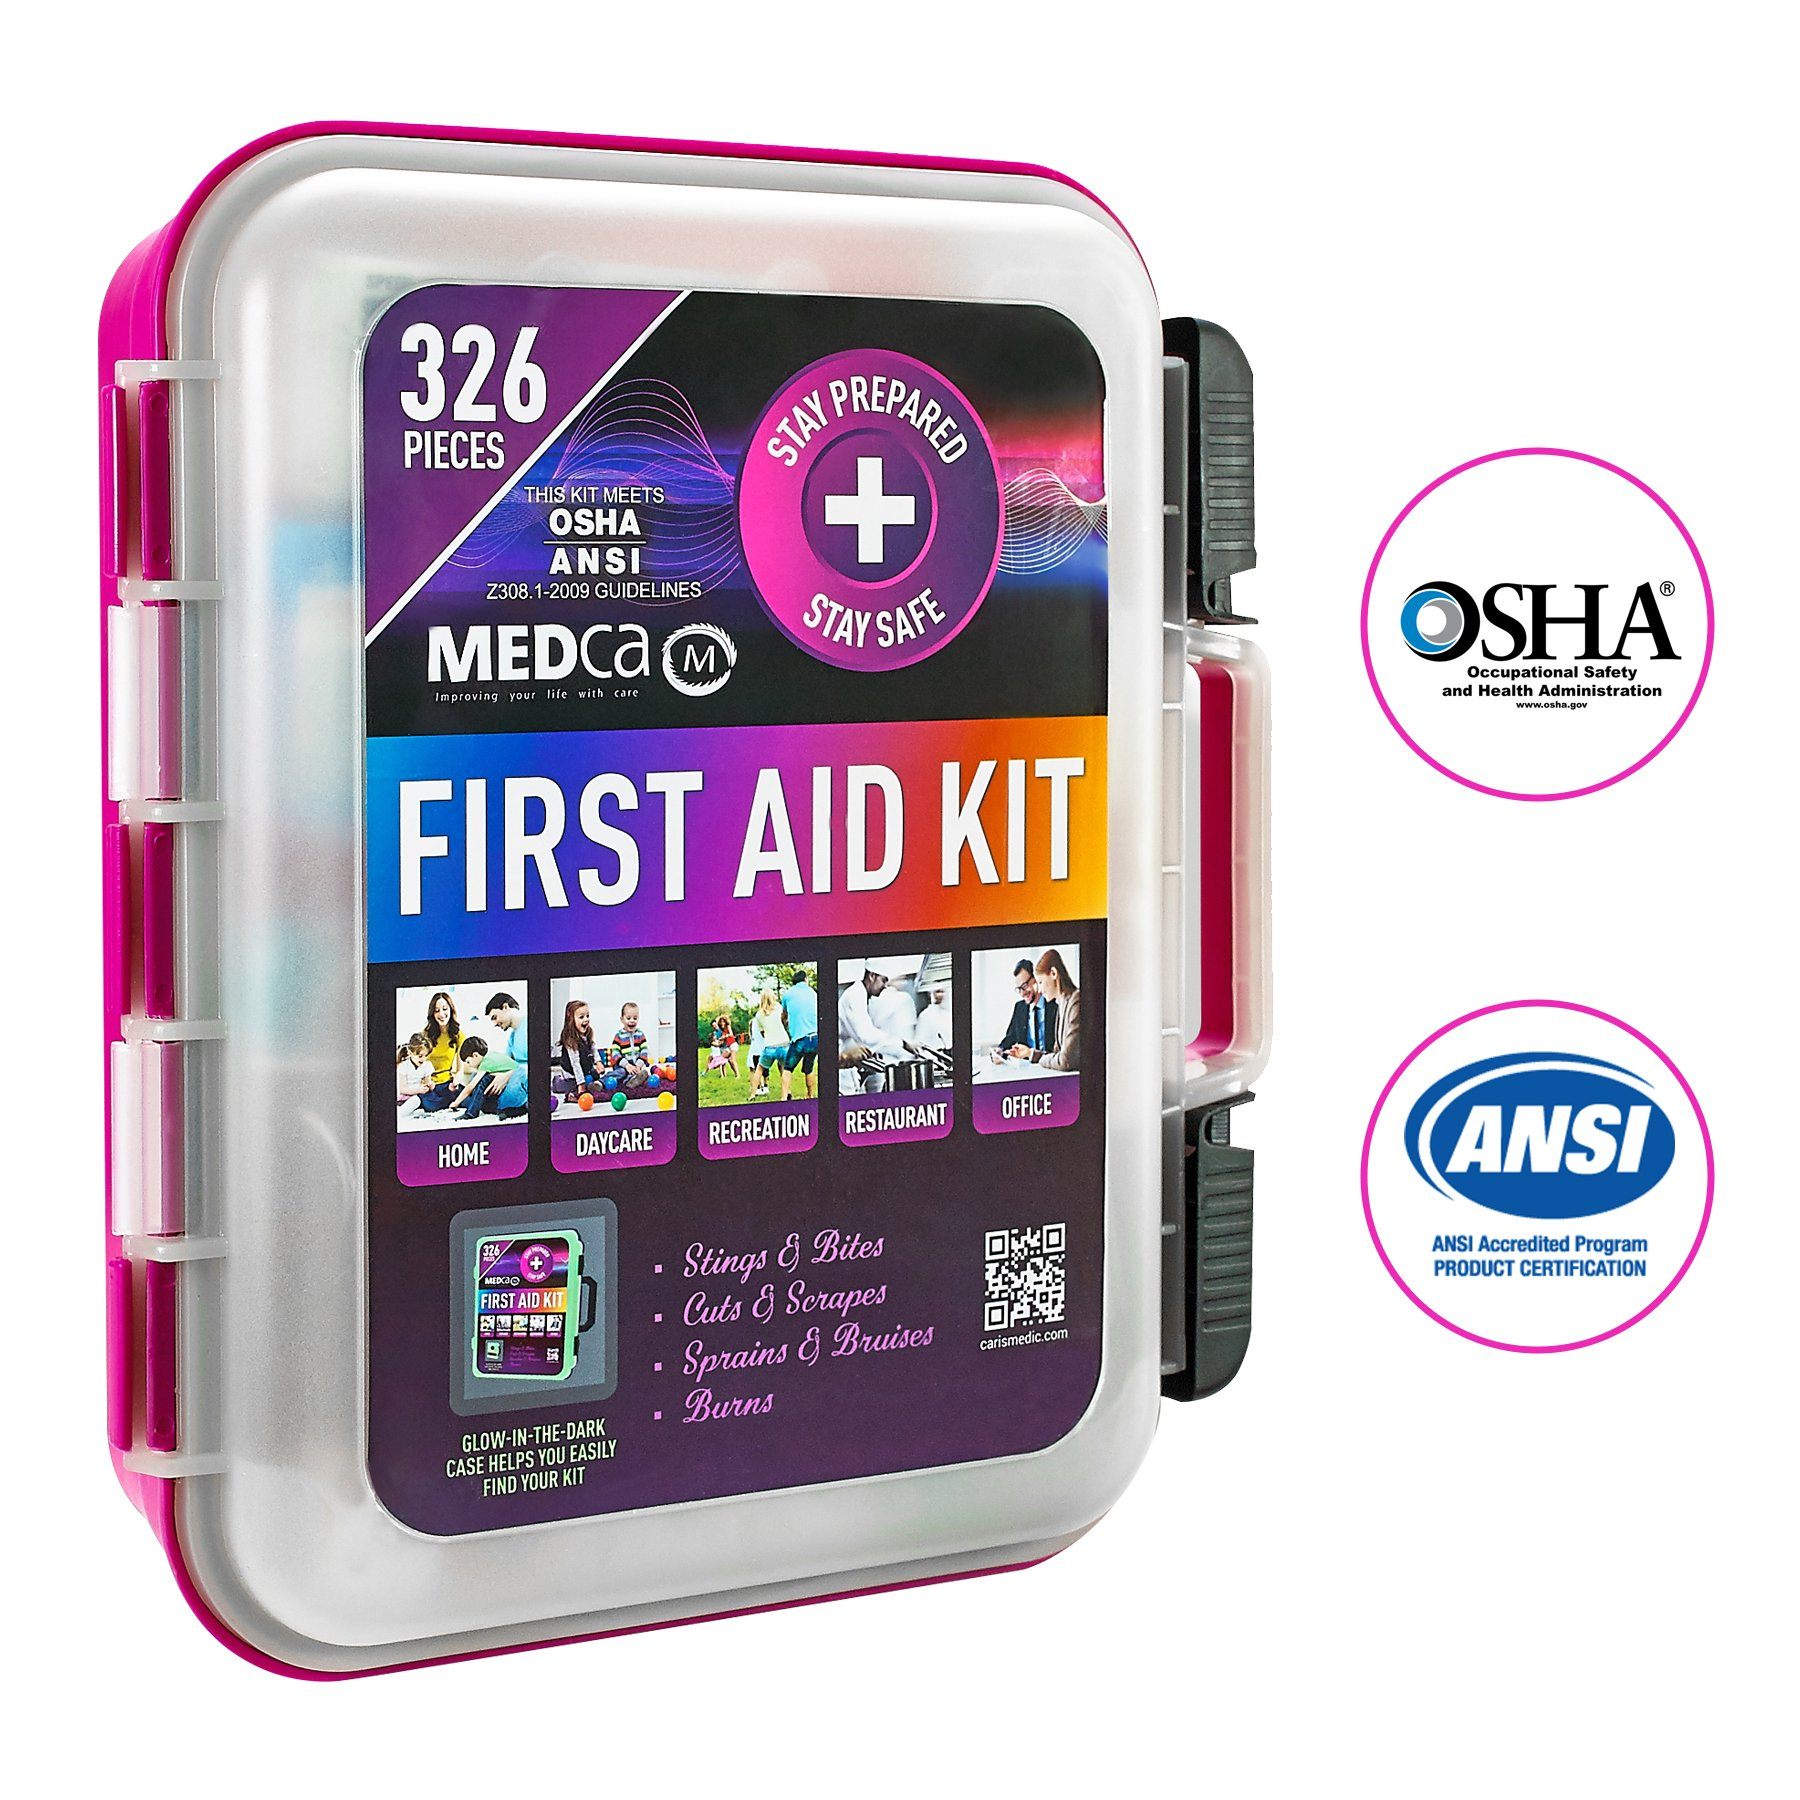 First Aid Kit - Emergency First Aid Kit and Medical Kit Exceeds ANSI Z308.1-2009 OSHA Standards, Hard Case, Wall Mount & Glows in The Dark for Offices, Home, Schools, Daycare, Construction Sites by MEDca (Image #1)